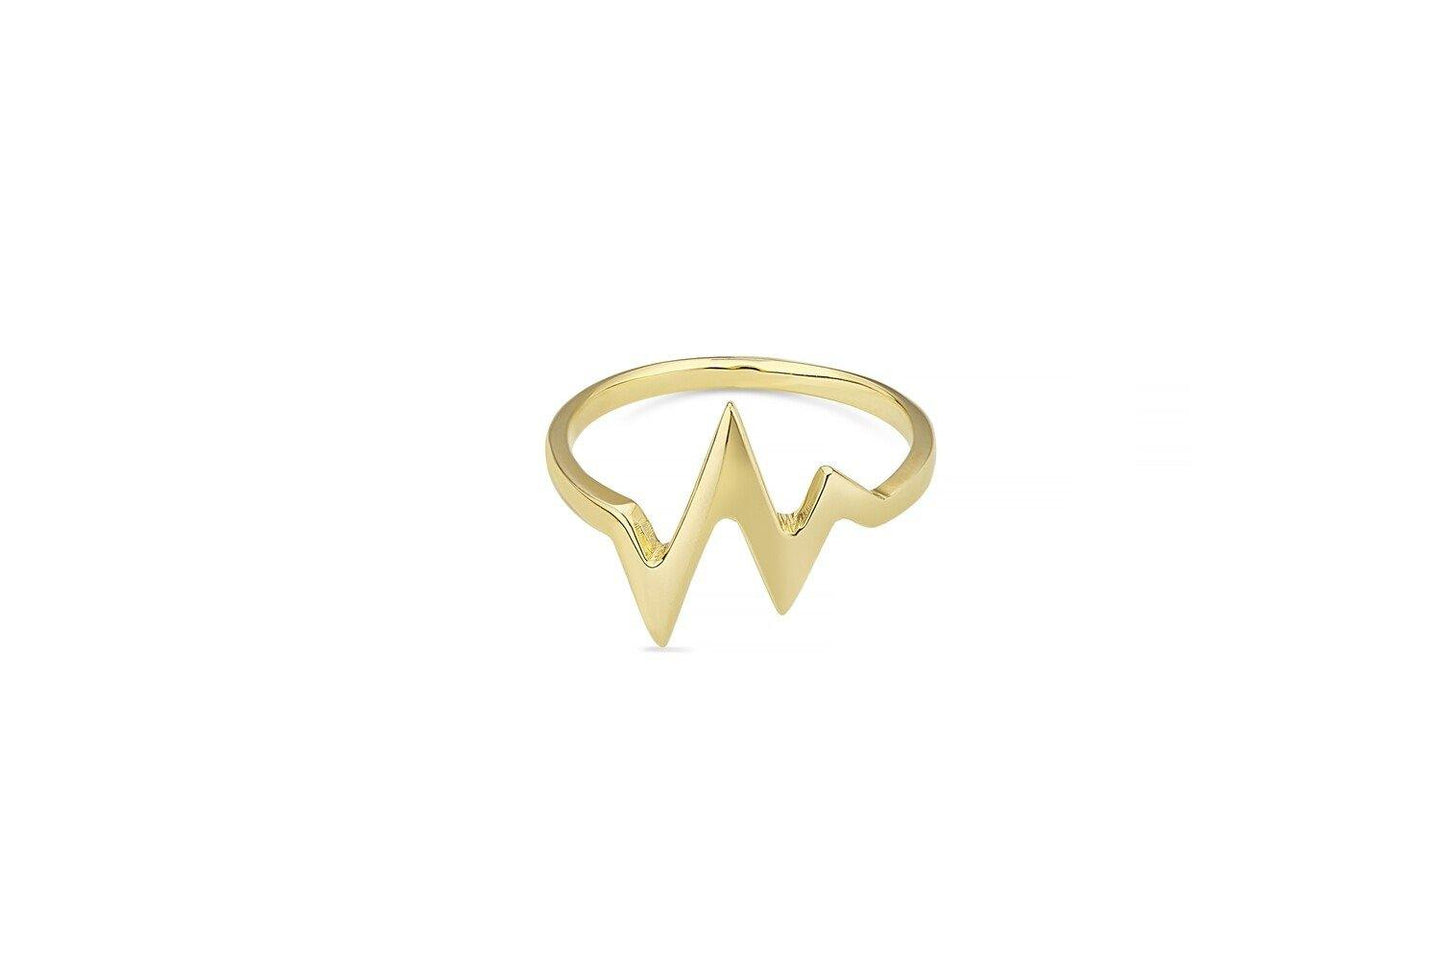 9ct Yellow Gold HeartBeat Ring